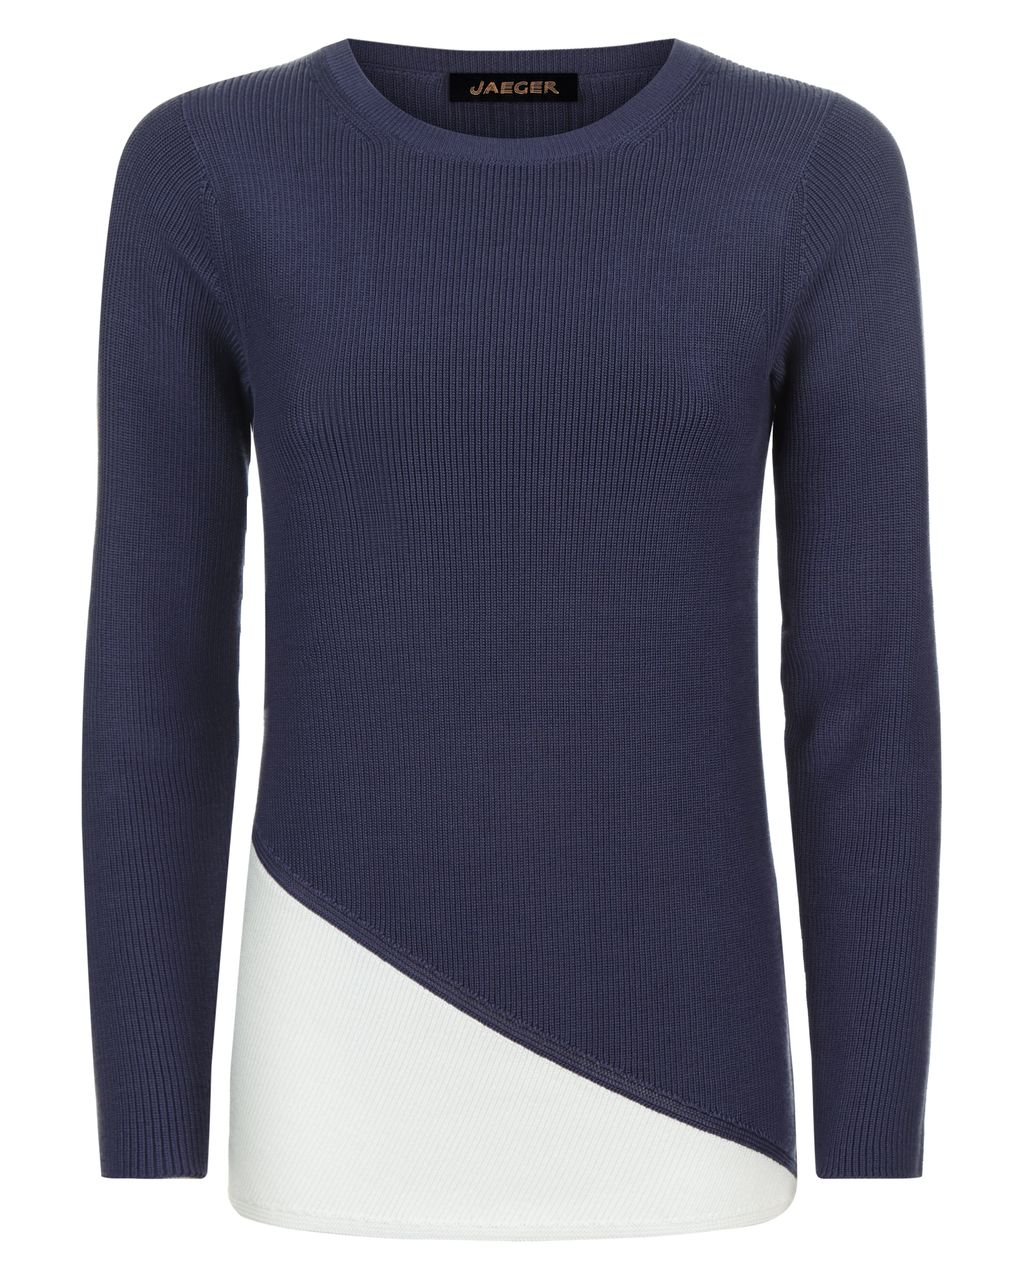 Colour Block Ribbed Sweater, White - style: standard; secondary colour: white; predominant colour: navy; occasions: casual; length: standard; fibres: cotton - 100%; fit: slim fit; neckline: crew; sleeve length: long sleeve; sleeve style: standard; texture group: knits/crochet; pattern type: knitted - fine stitch; pattern size: standard; pattern: colourblock; multicoloured: multicoloured; season: s/s 2016